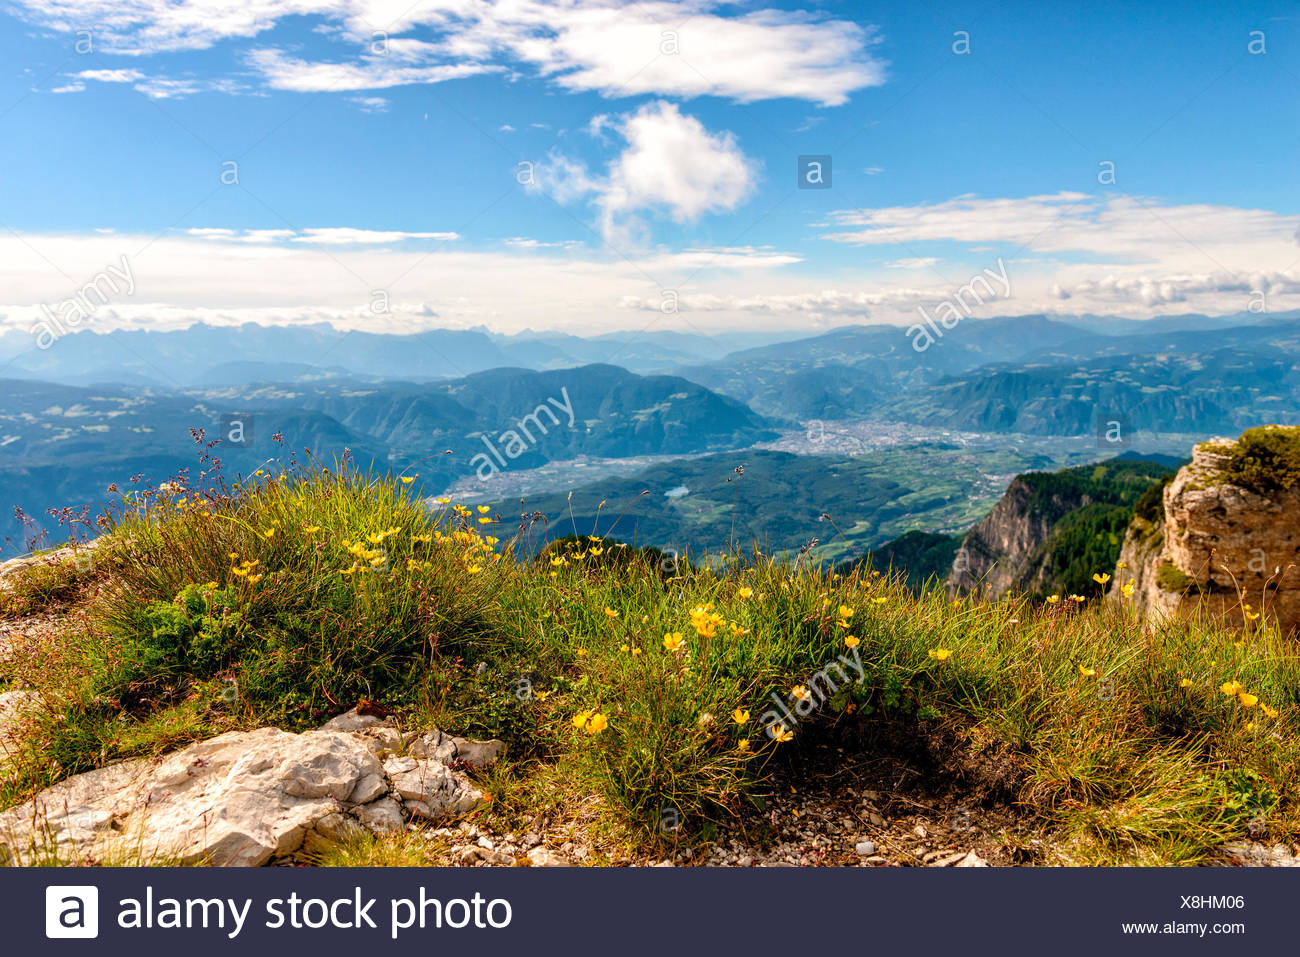 Bolzano see from the top of Roen mount, Non vally, Trentino Alto Adige, Italy - Stock Image